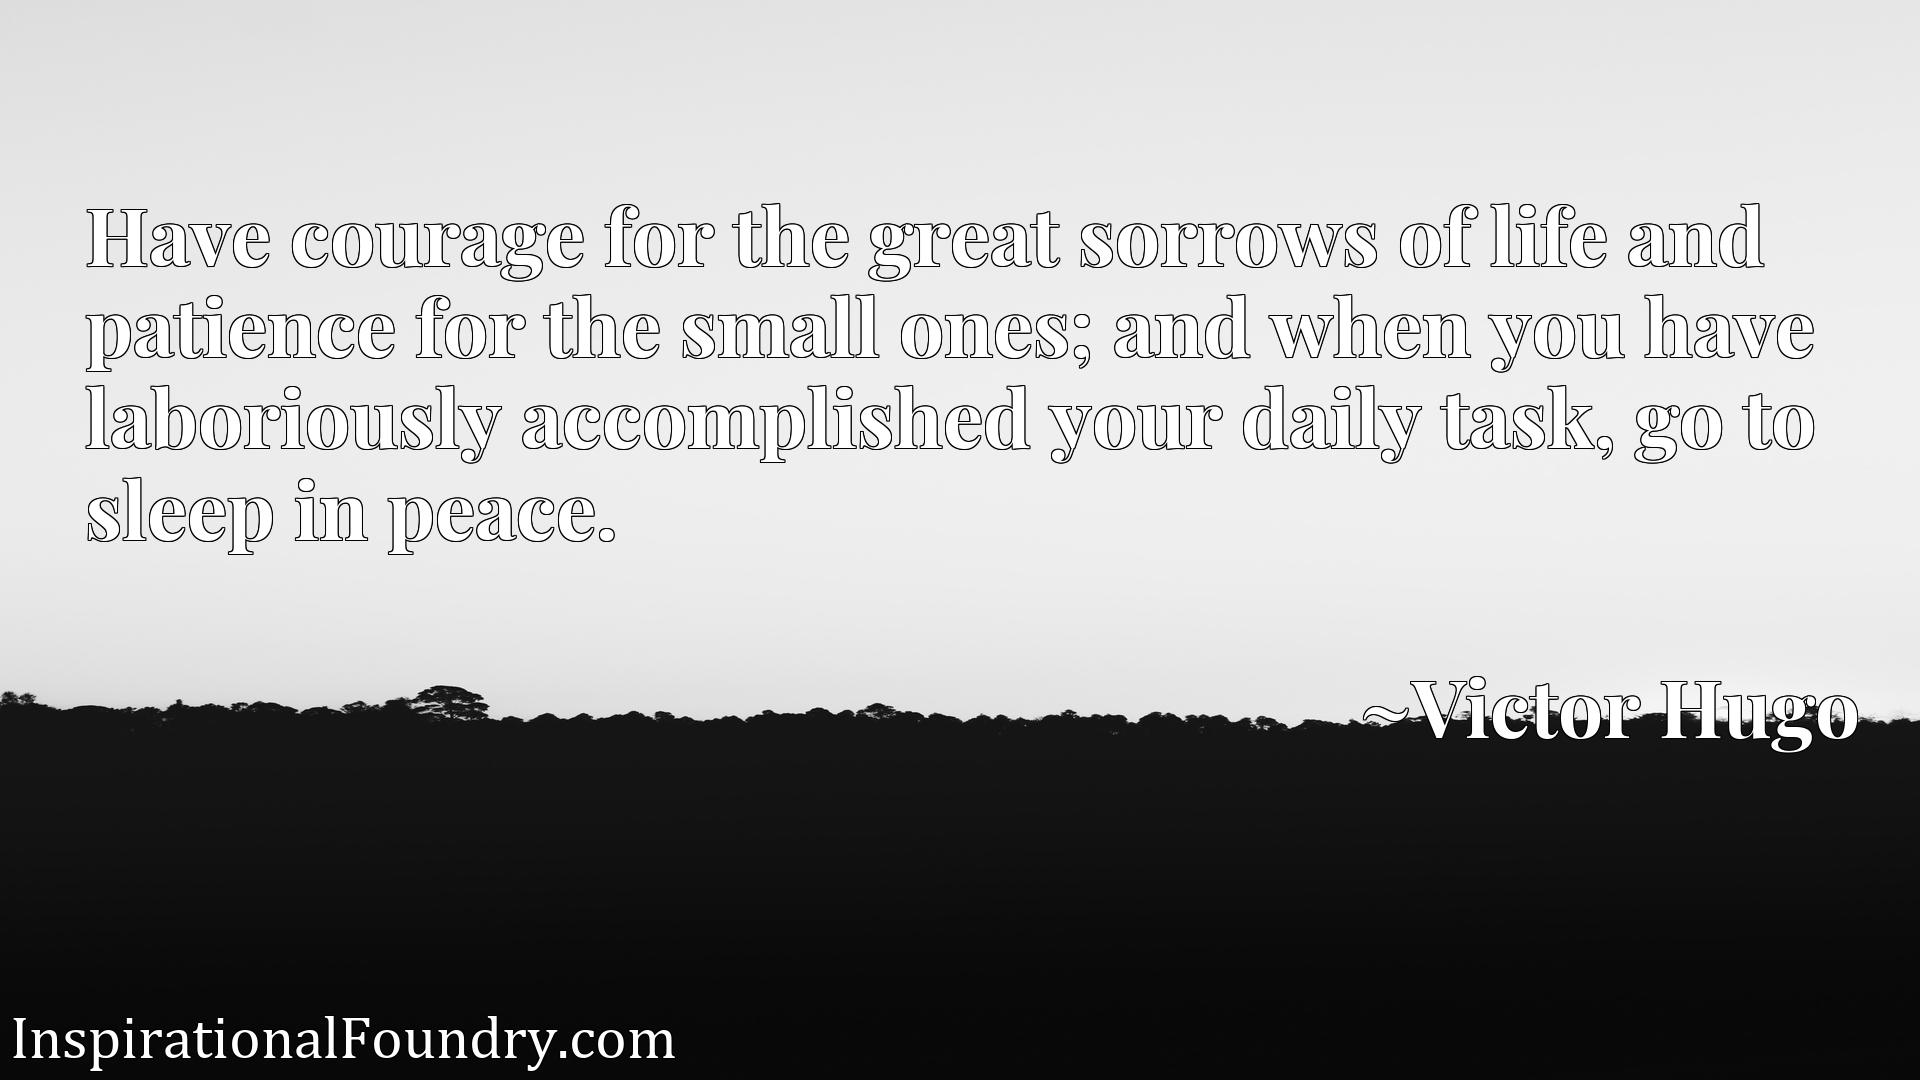 Have courage for the great sorrows of life and patience for the small ones; and when you have laboriously accomplished your daily task, go to sleep in peace.